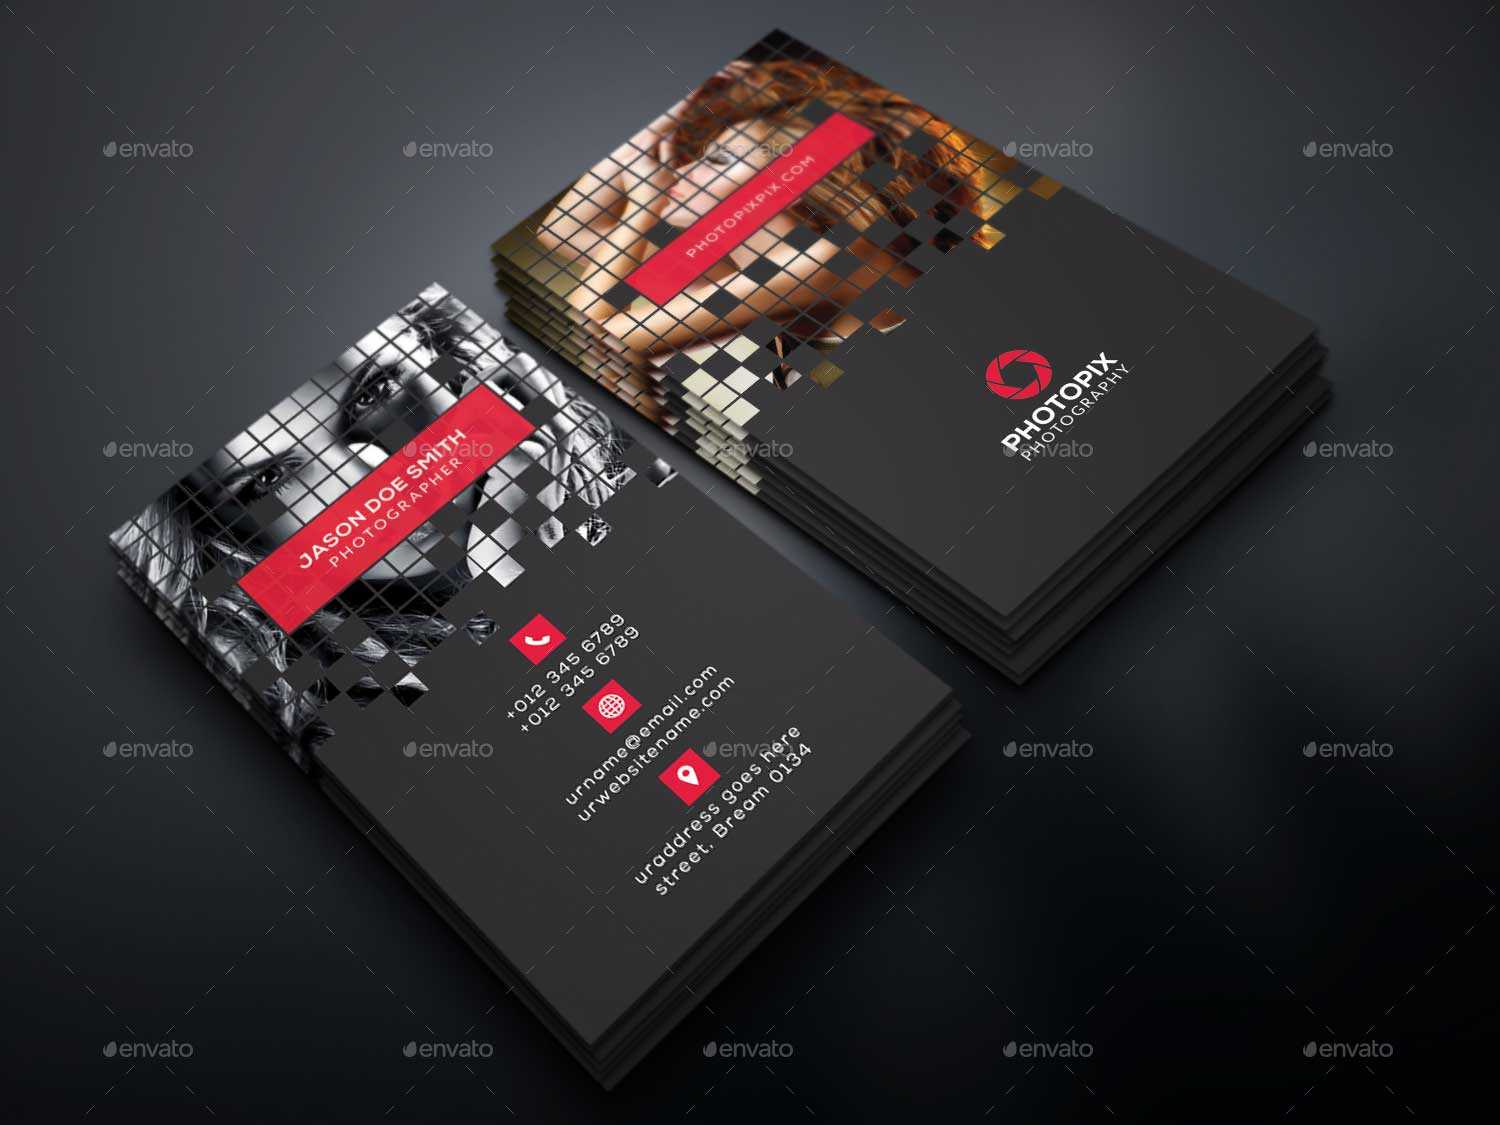 65+ Best Business Card For Photographers 2016 | Designmaz Intended For Free Business Card Templates For Photographers